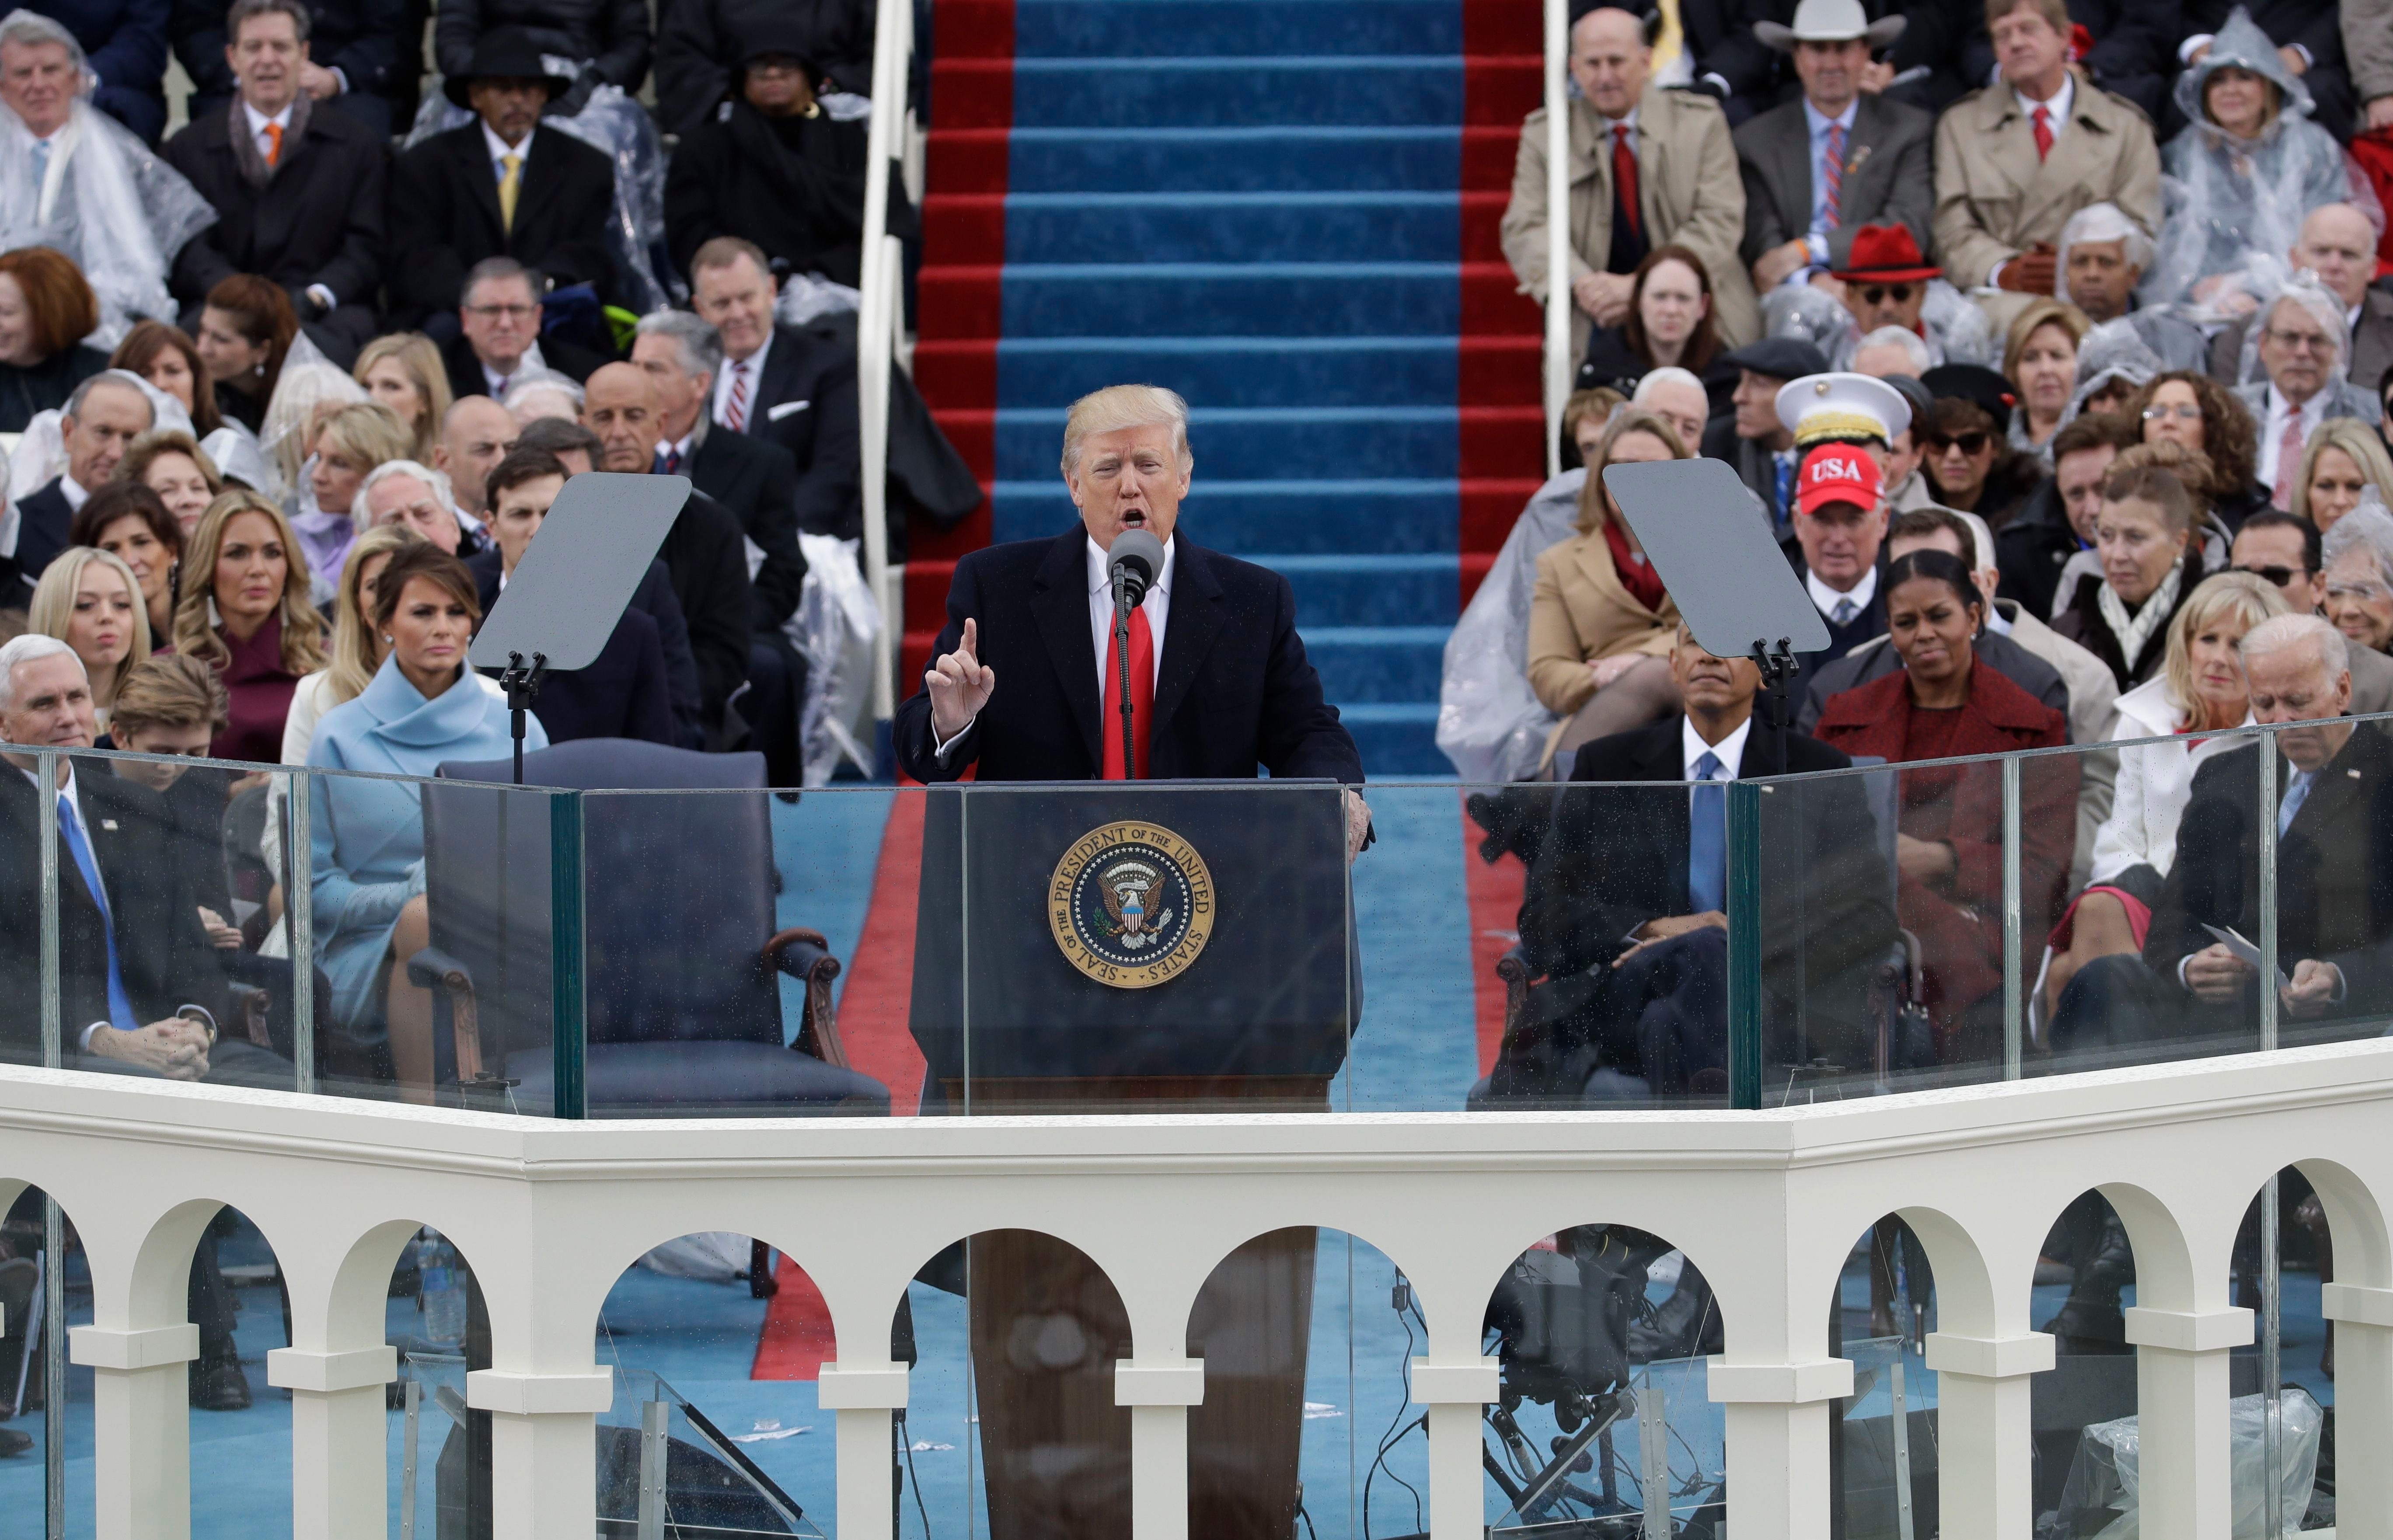 President Donald Trump delivers his inaugural address after being sworn in as the 45th president of the United States during the 58th Presidential Inauguration at the U.S. Capitol in WashingtonTrump Inauguration, Washington, USA - 20 Jan 2017